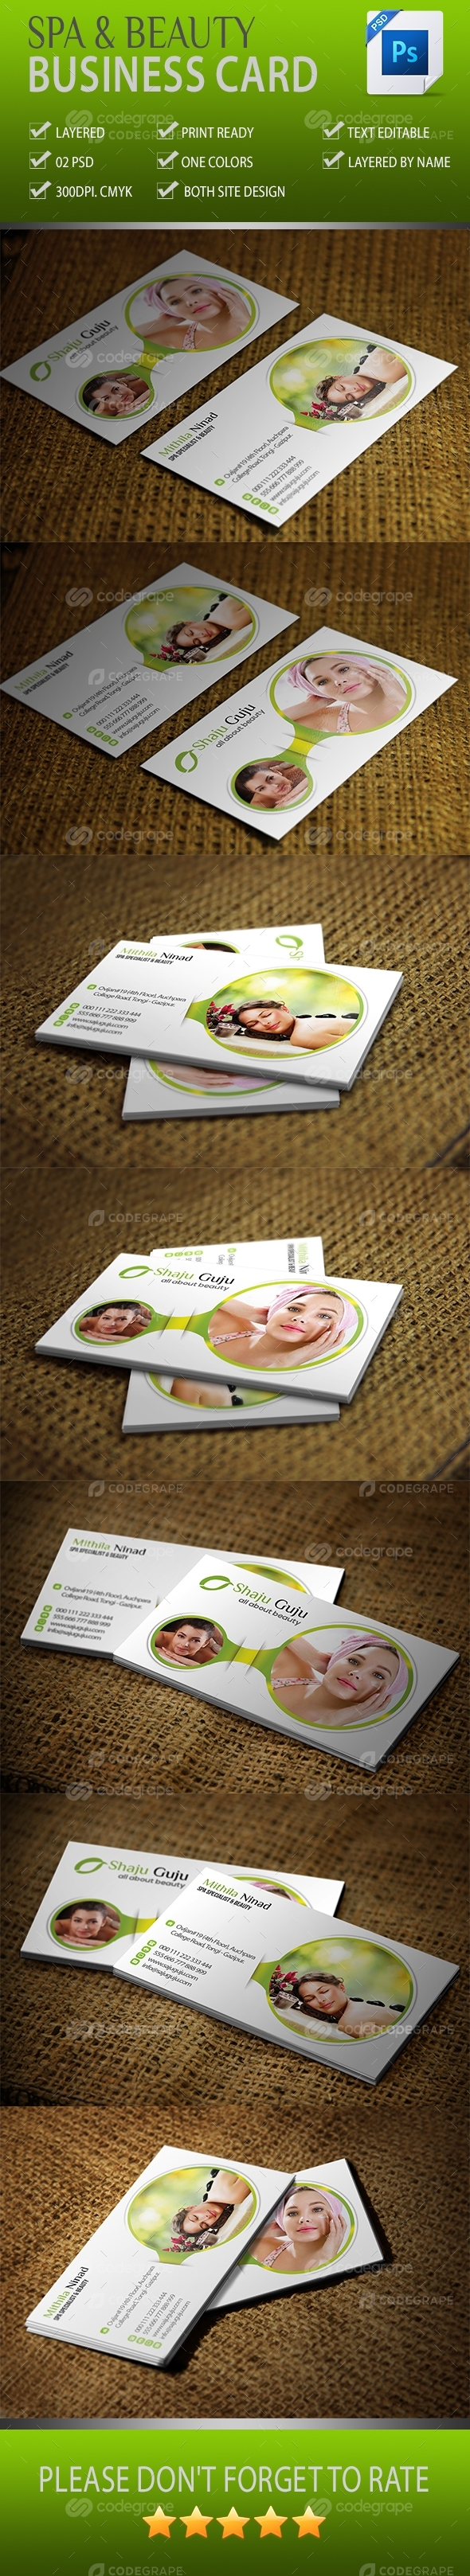 Spa And Beauty Business Card Vol-01